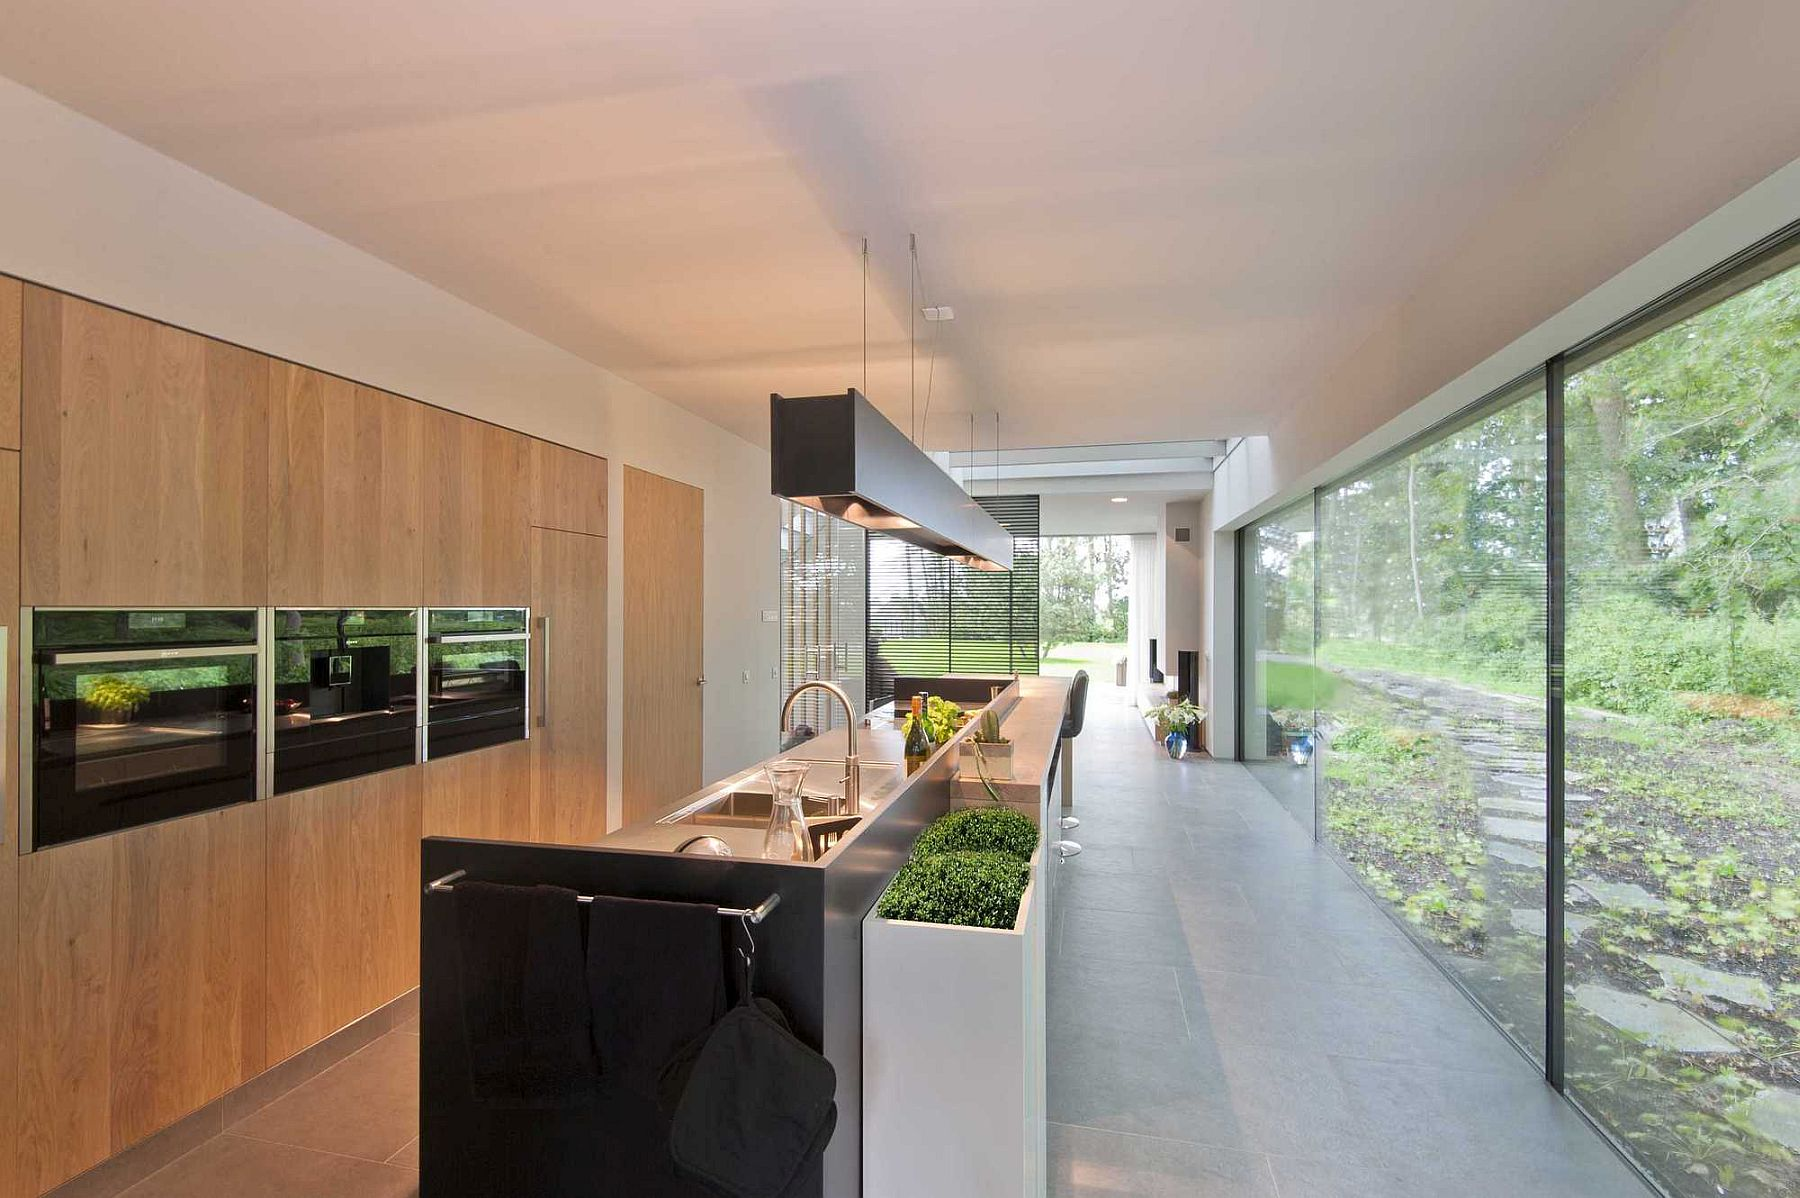 Floor-to-ceiling-glass-windows-bring-greenery-into-this-kitchen